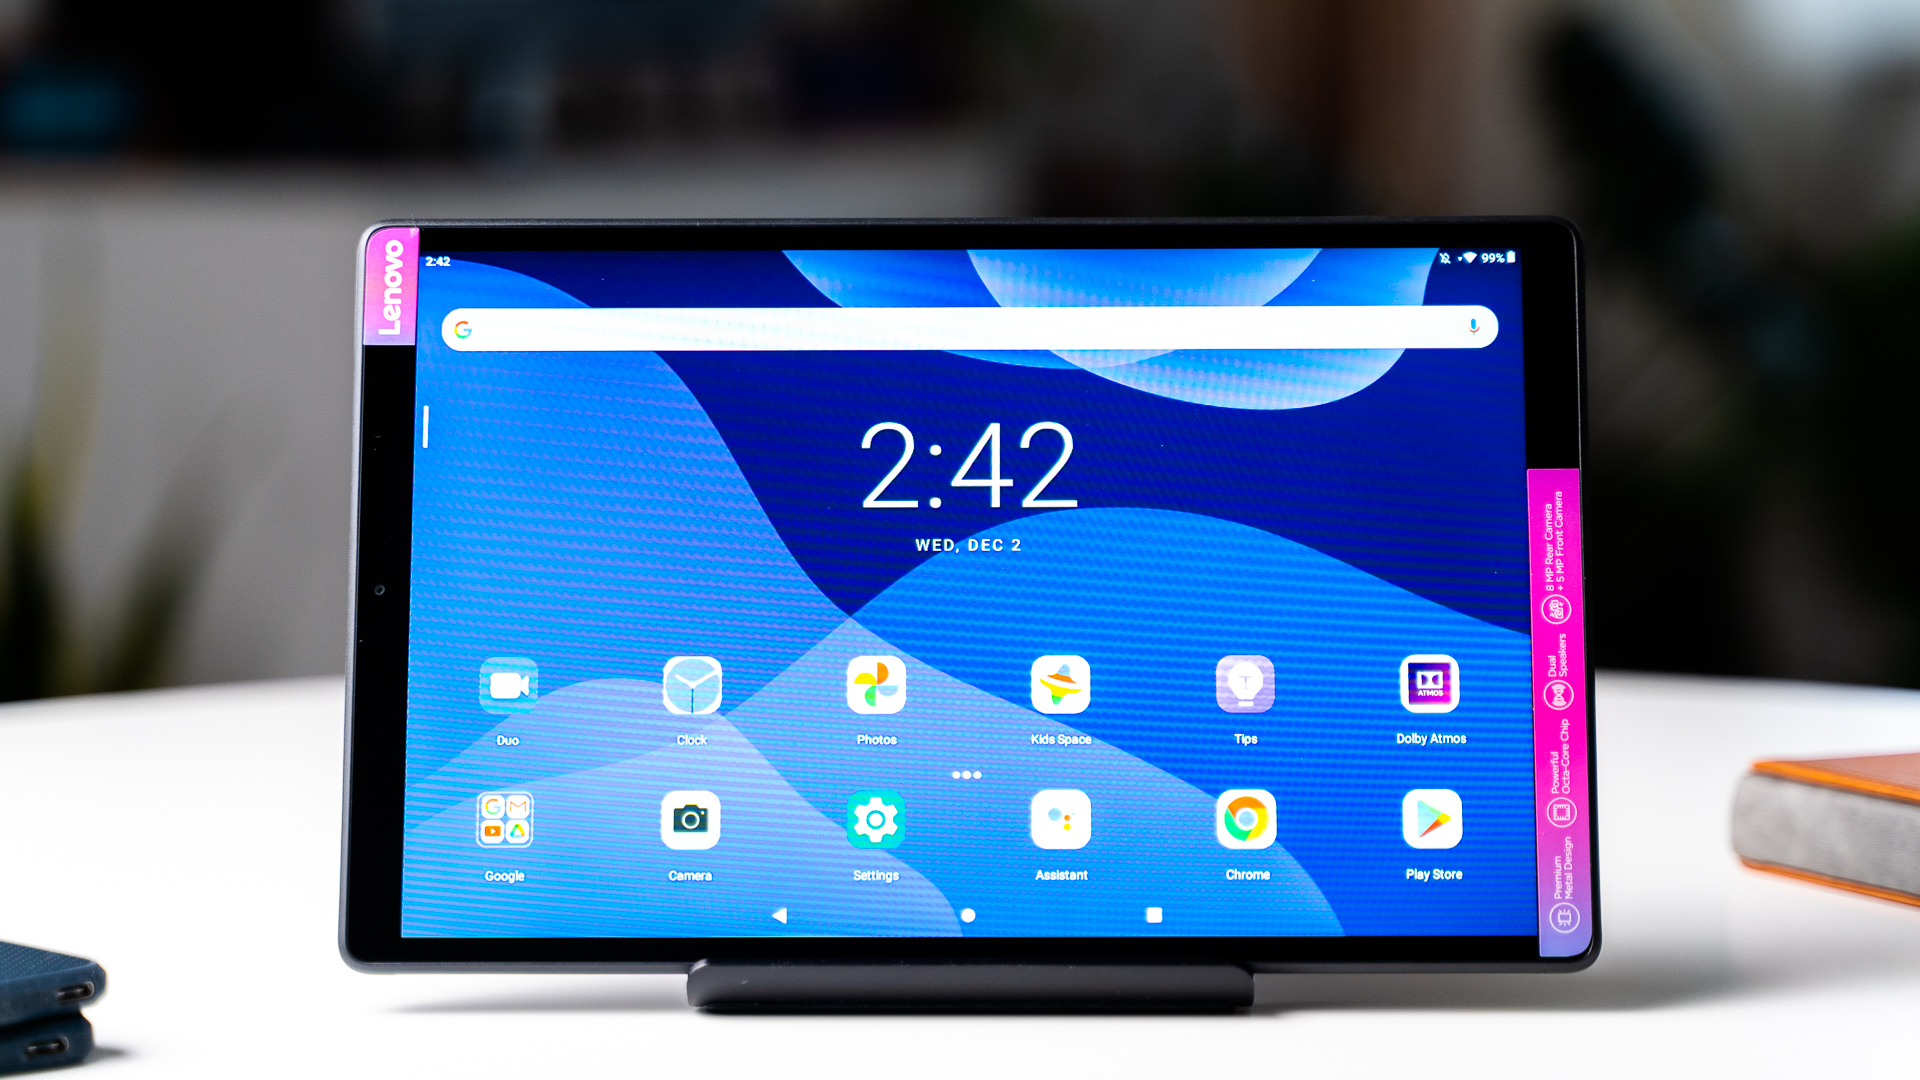 Lenovo Tab M10 Hd 2 Gen Review A Good Family Tablet